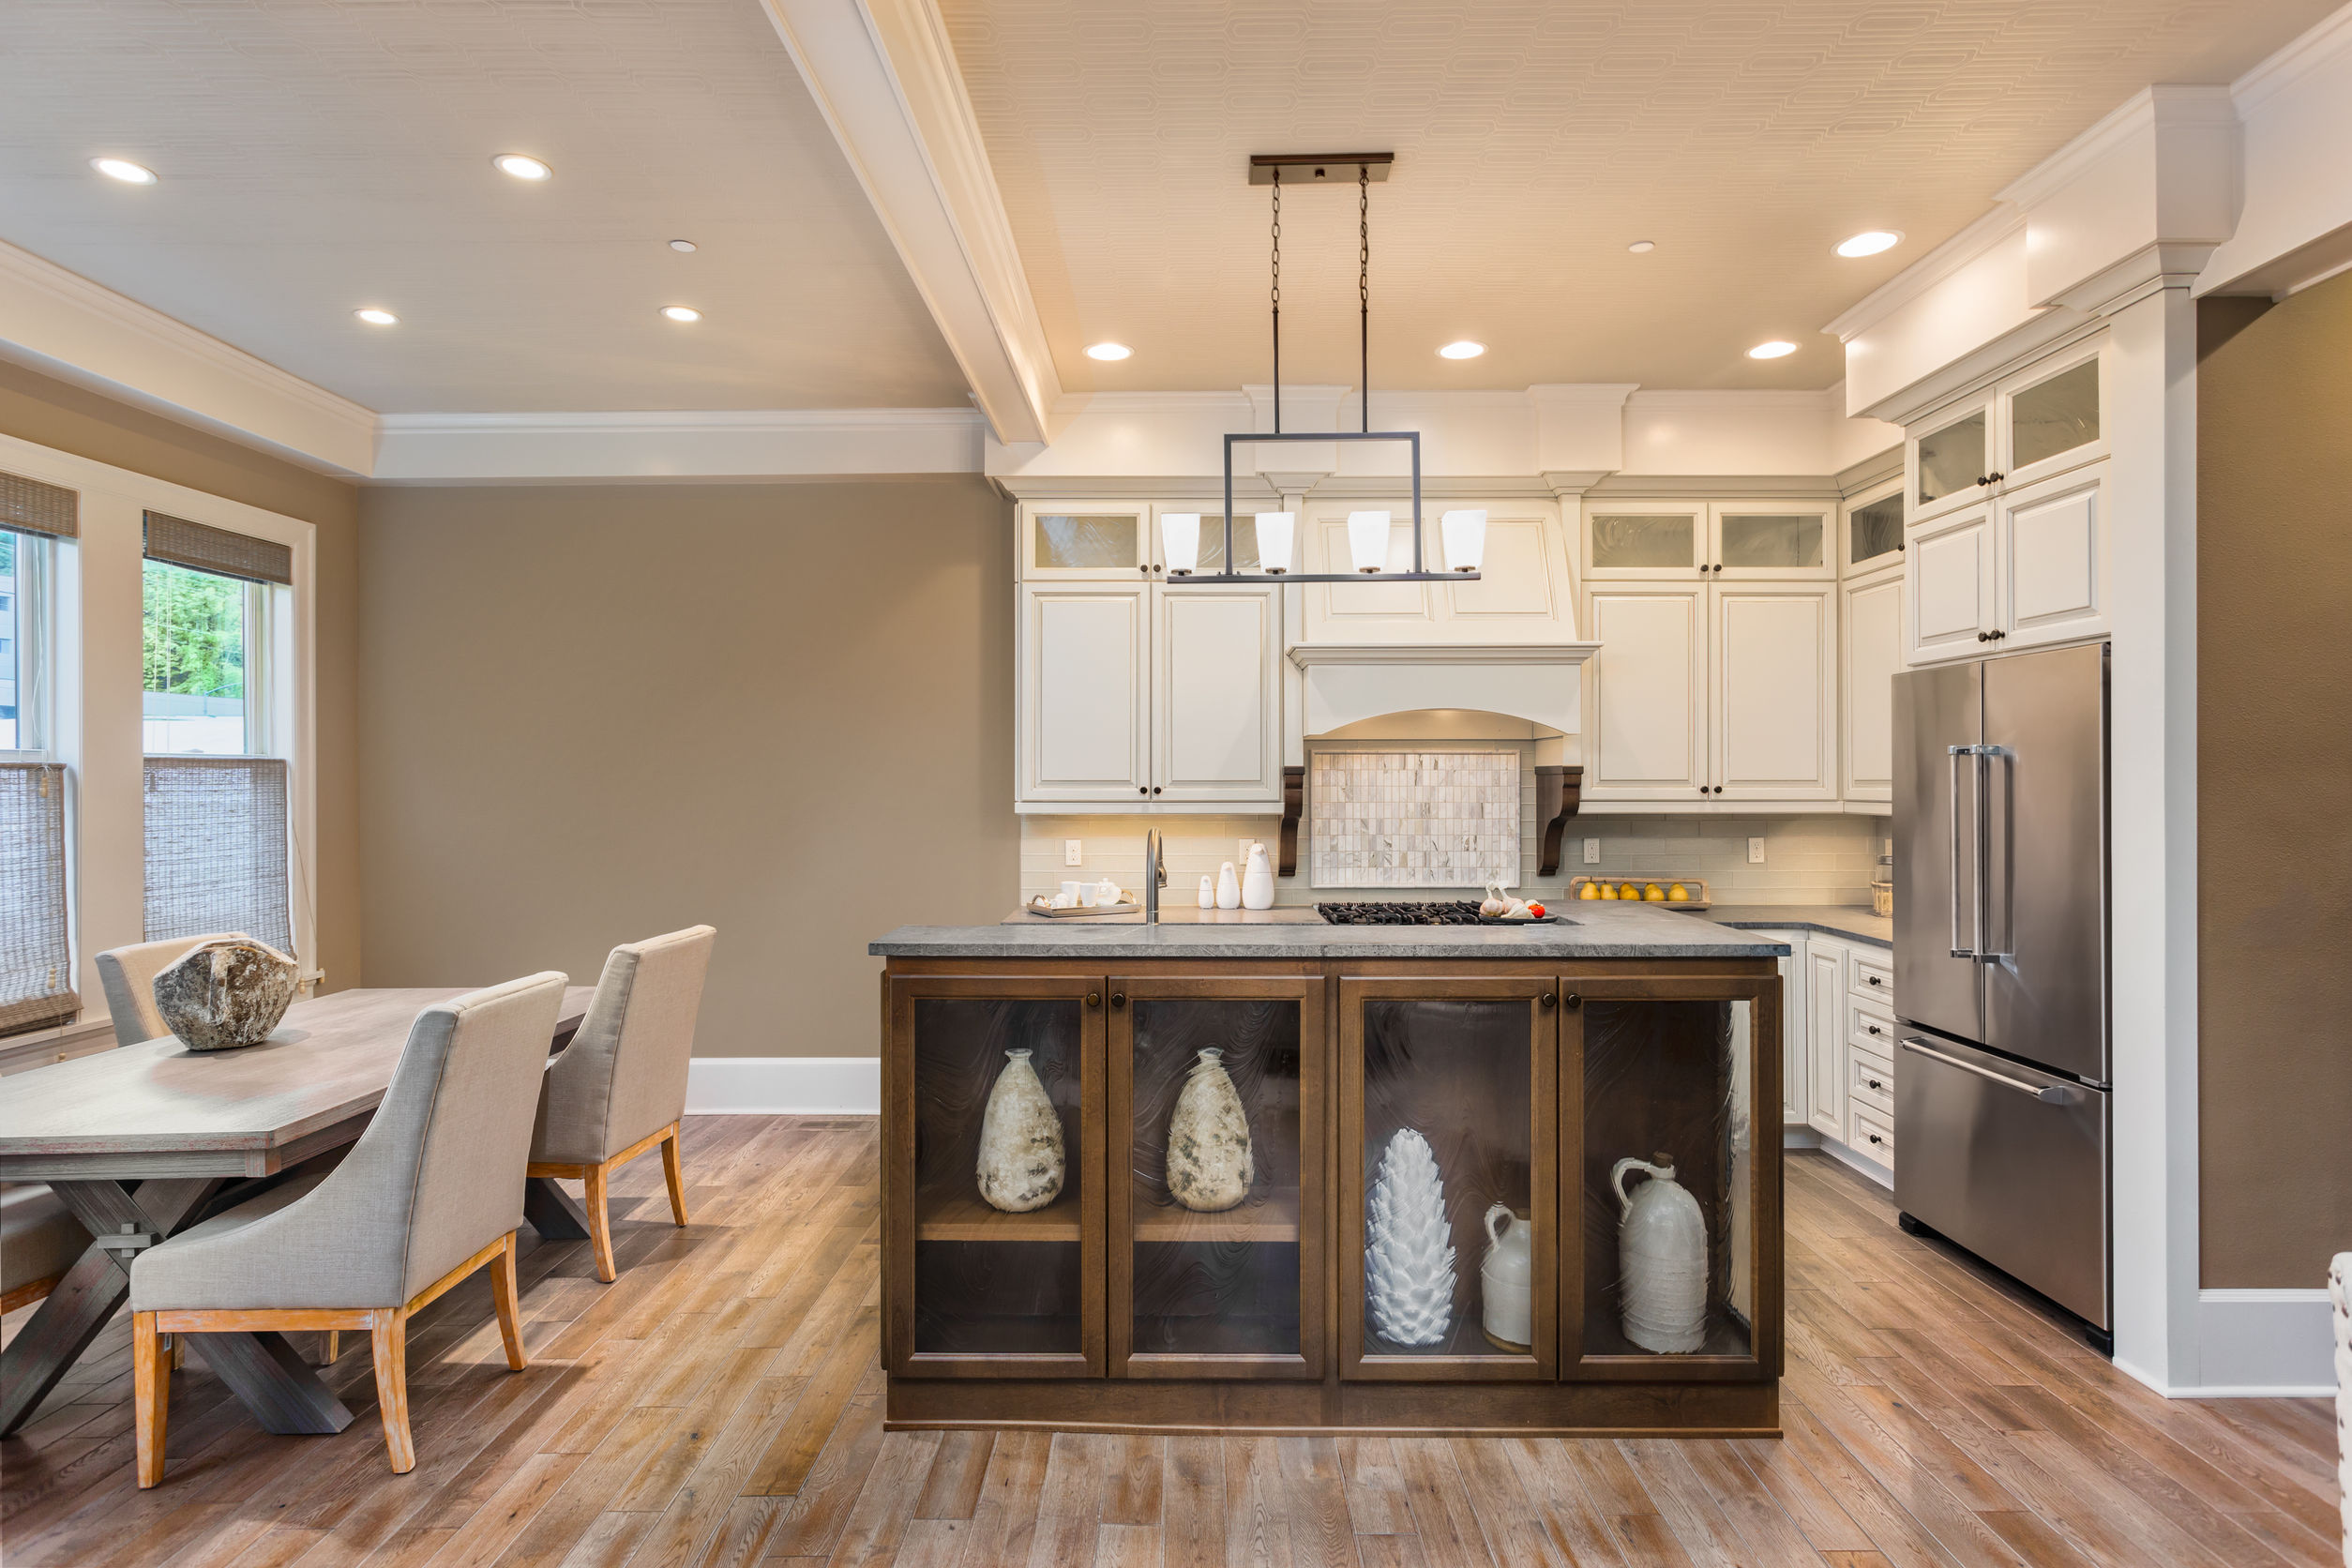 46487546 - kitchen and dining room interior in new luxury home